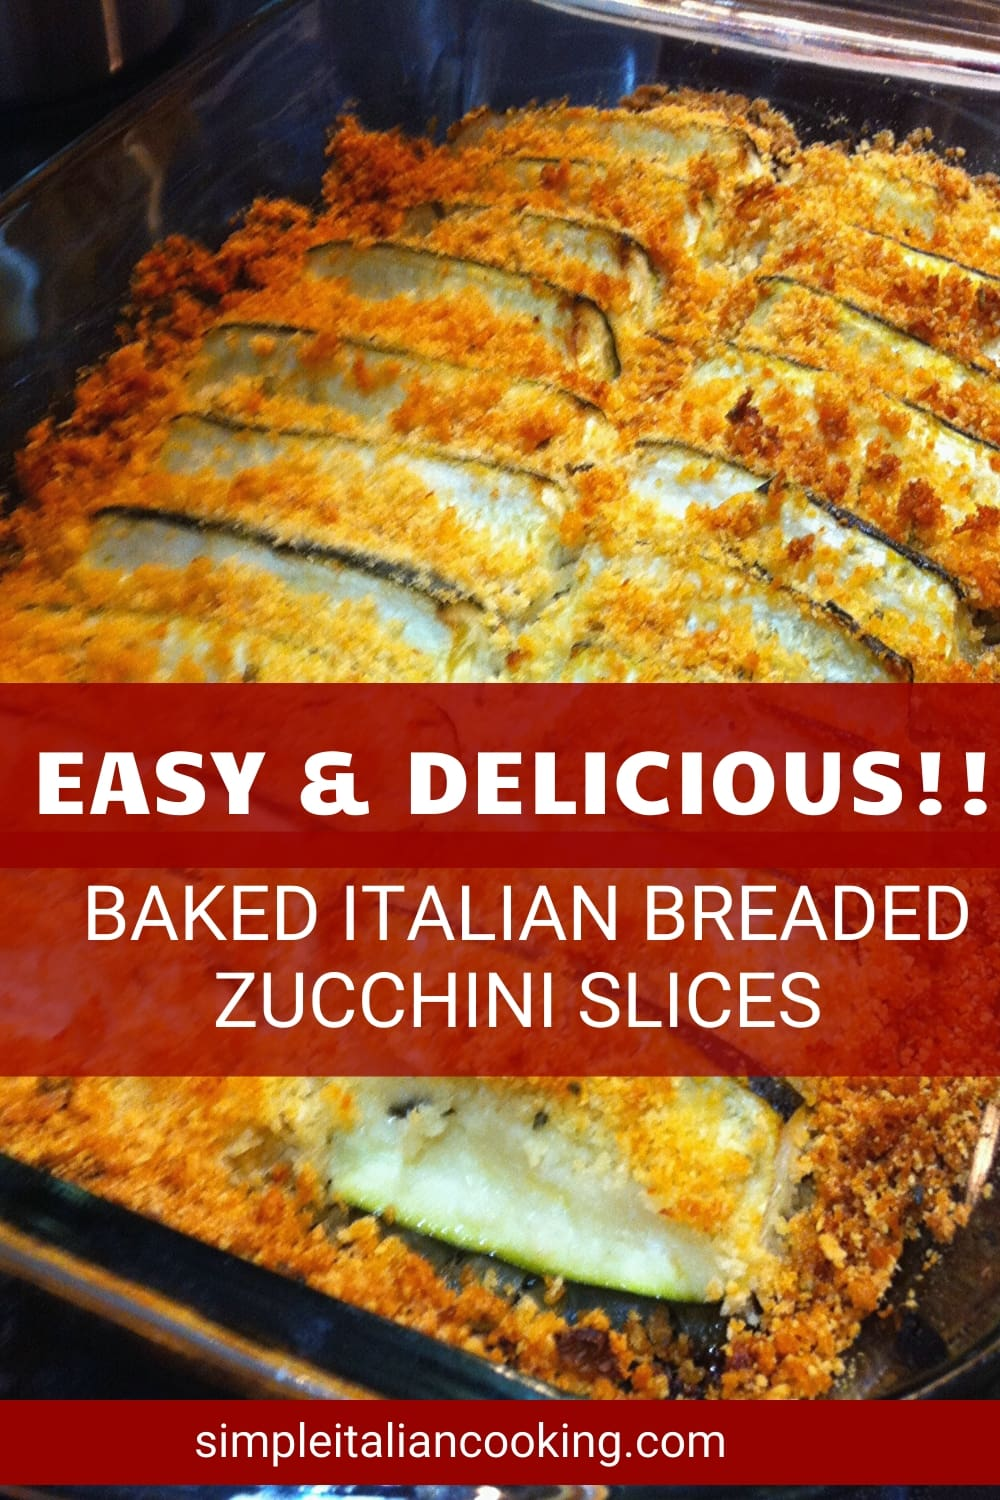 Easy Italian recipe for how to make baked Zucchini slices